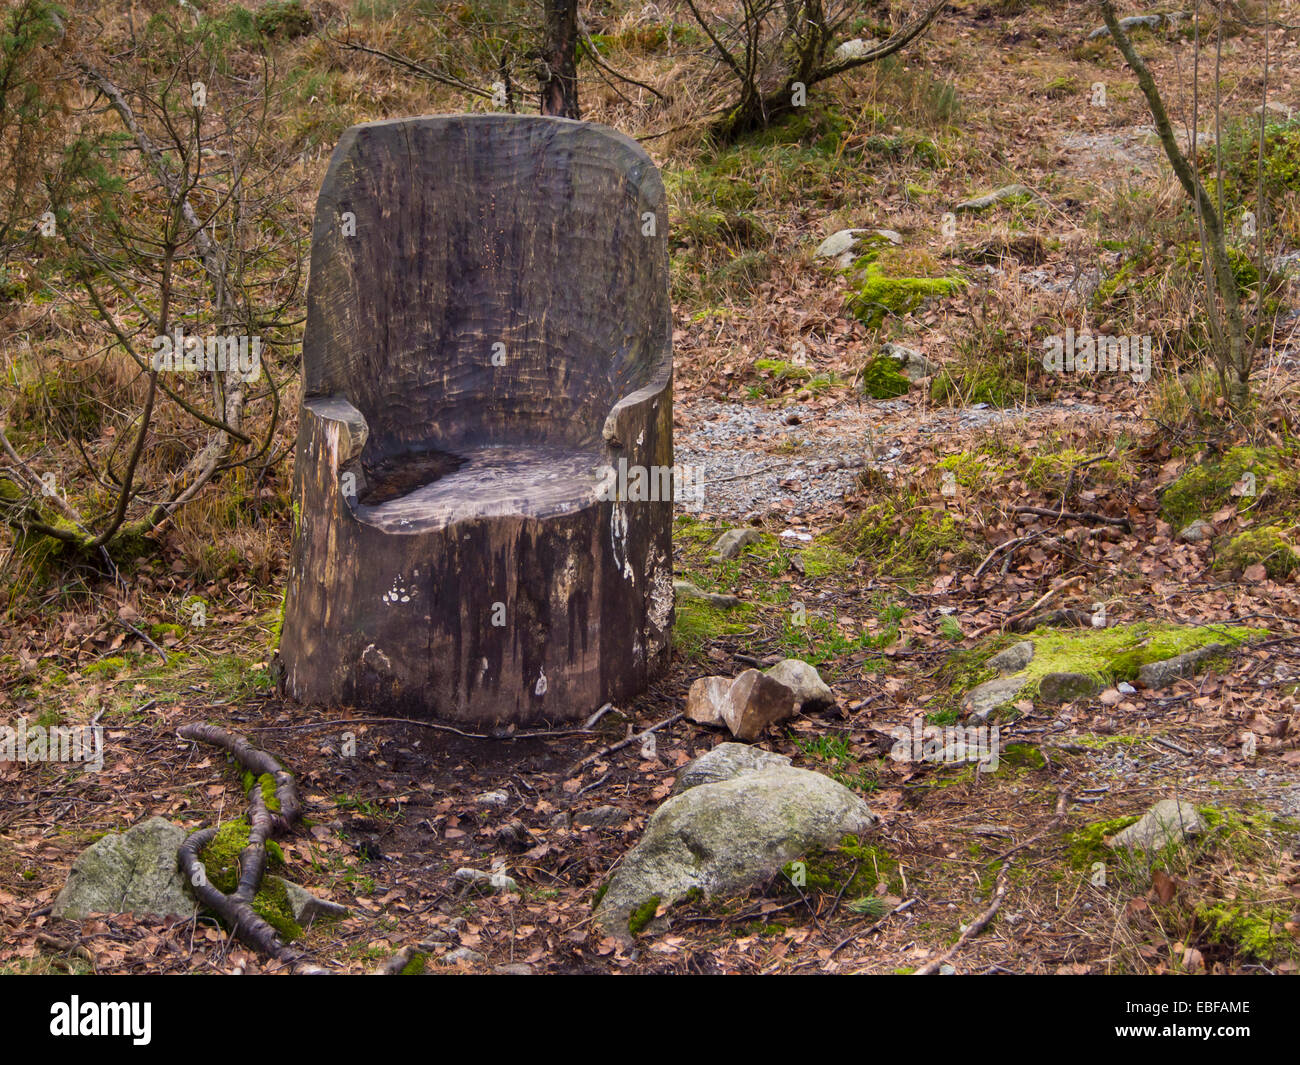 Tree stump chair firmly rooted to the ground and ready for weary hikers in the forests around Stavanger Norway - Stock Image